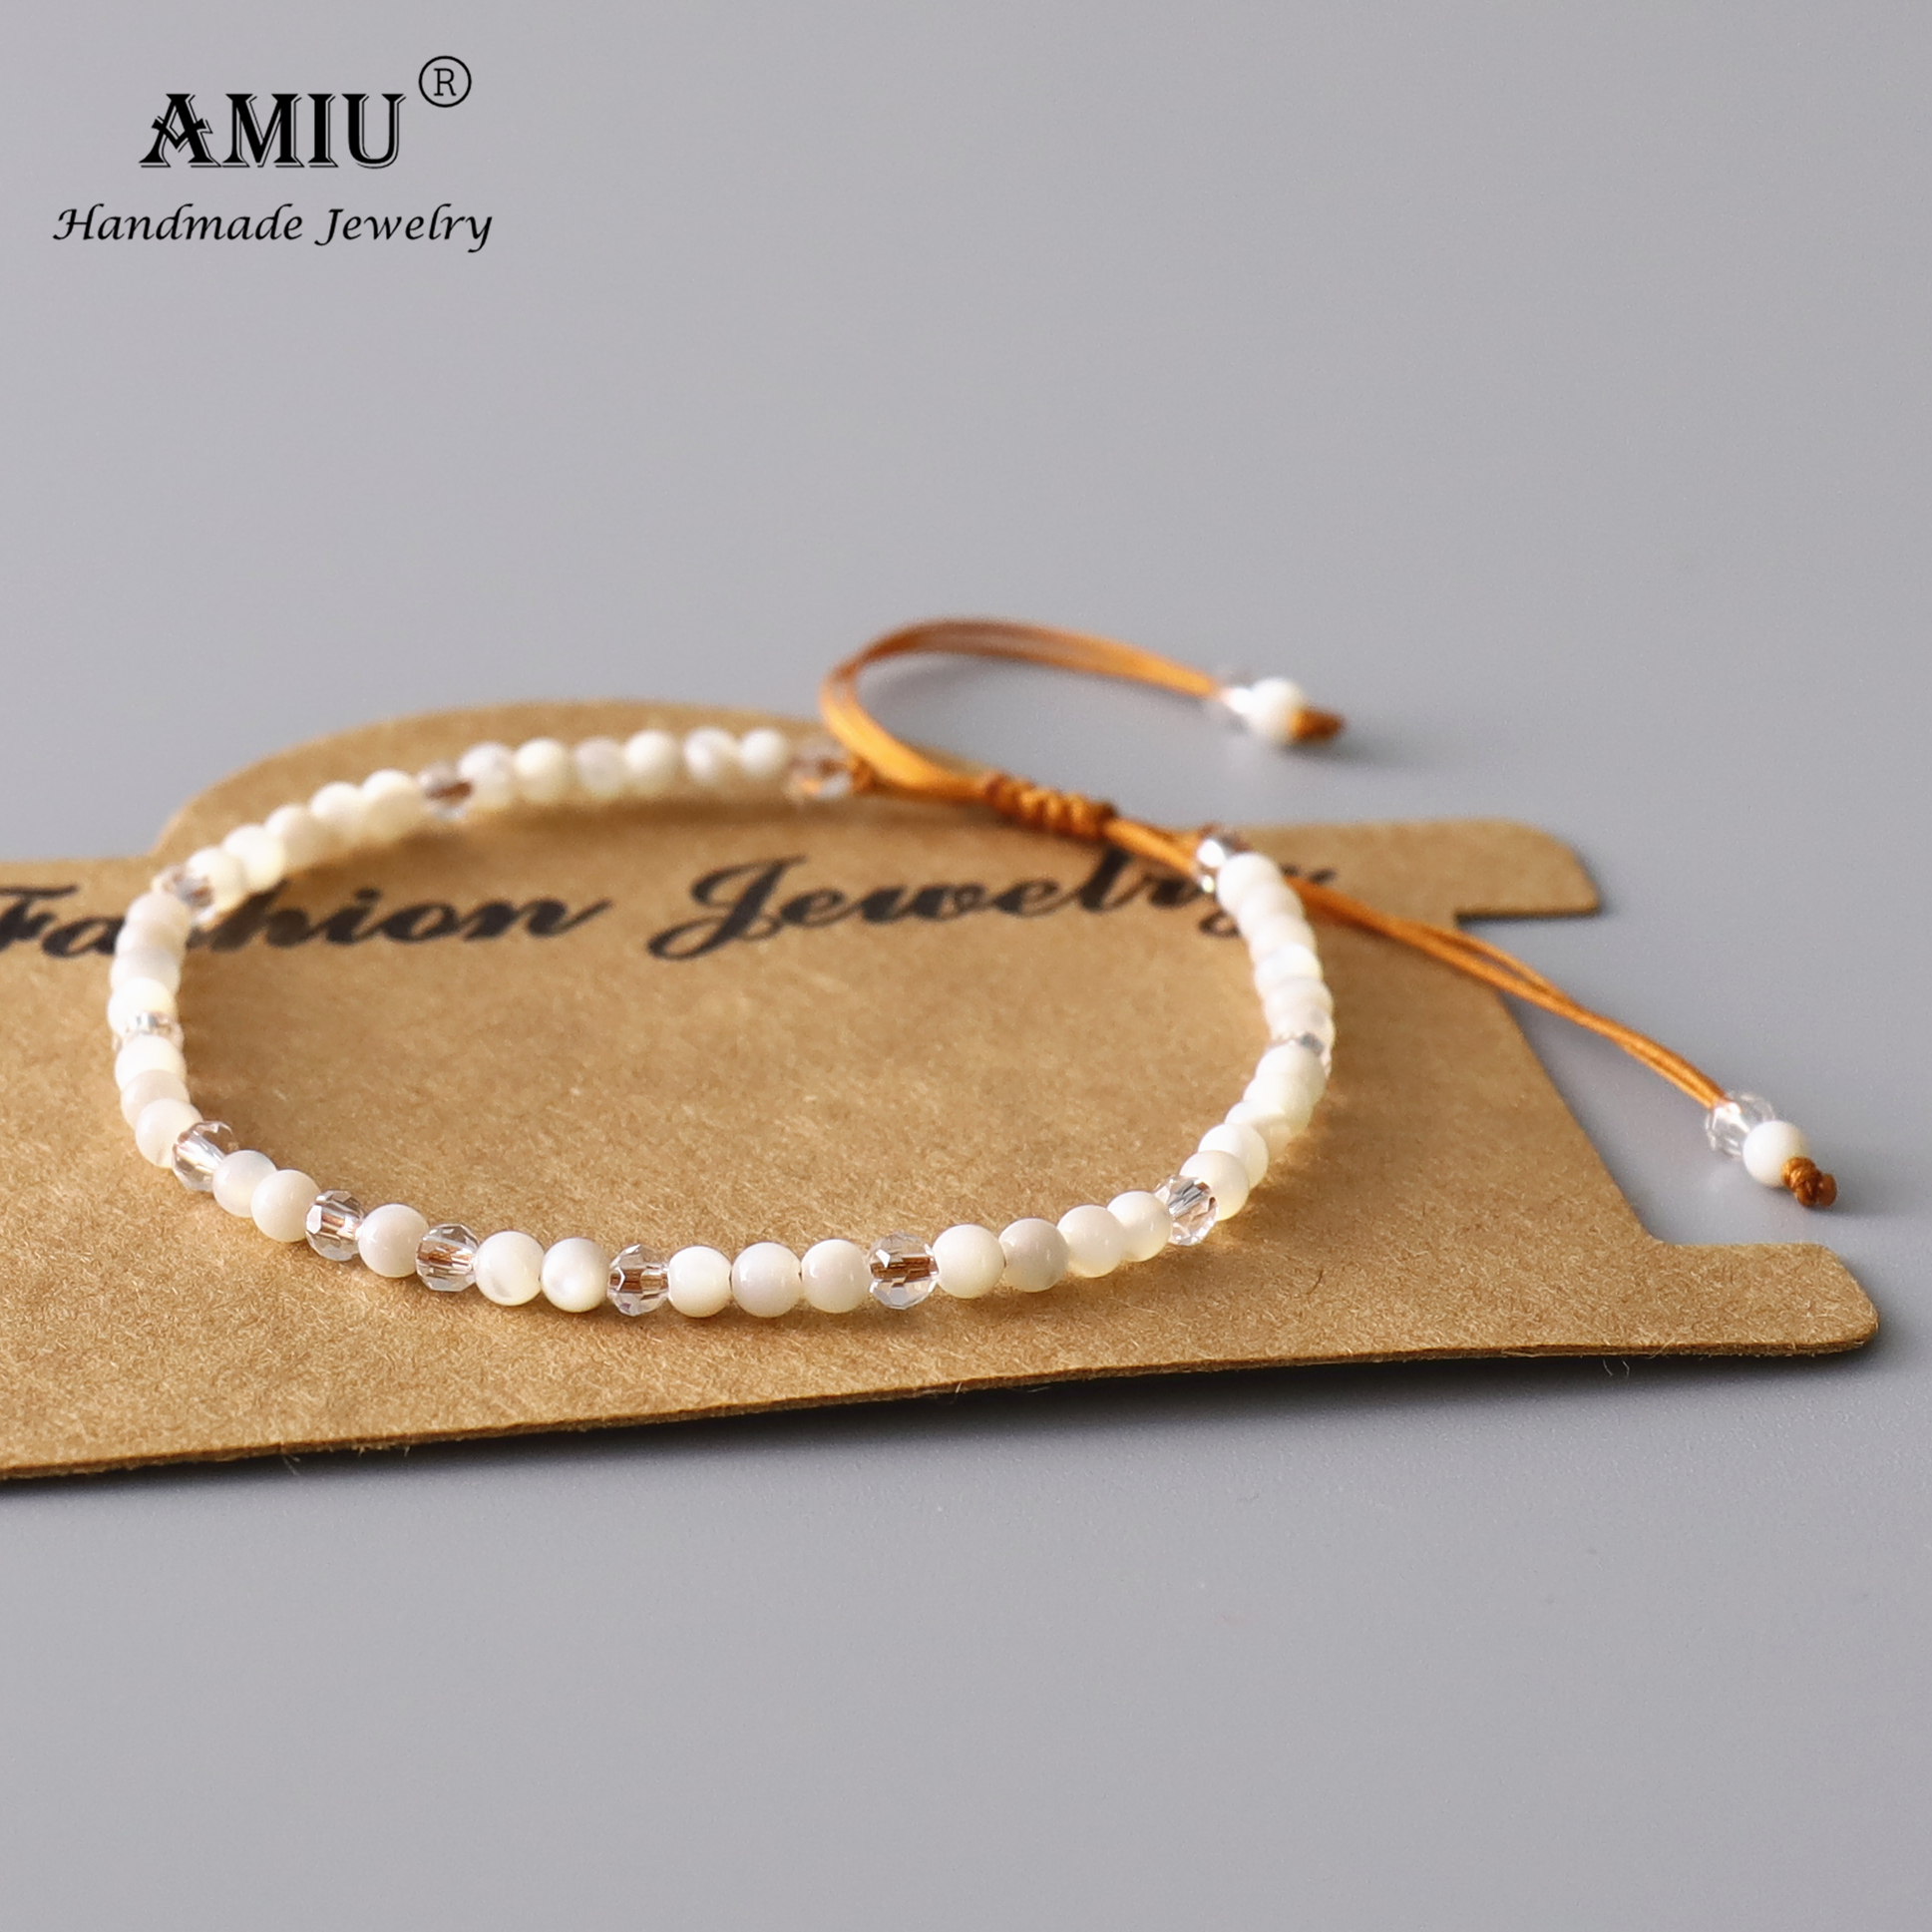 AMIU Natura White Mother Of Pearl Bracelet Beads Adjustable Bracelet Natural Crystal Bohemia Bring Lucky As Gift Bracelets